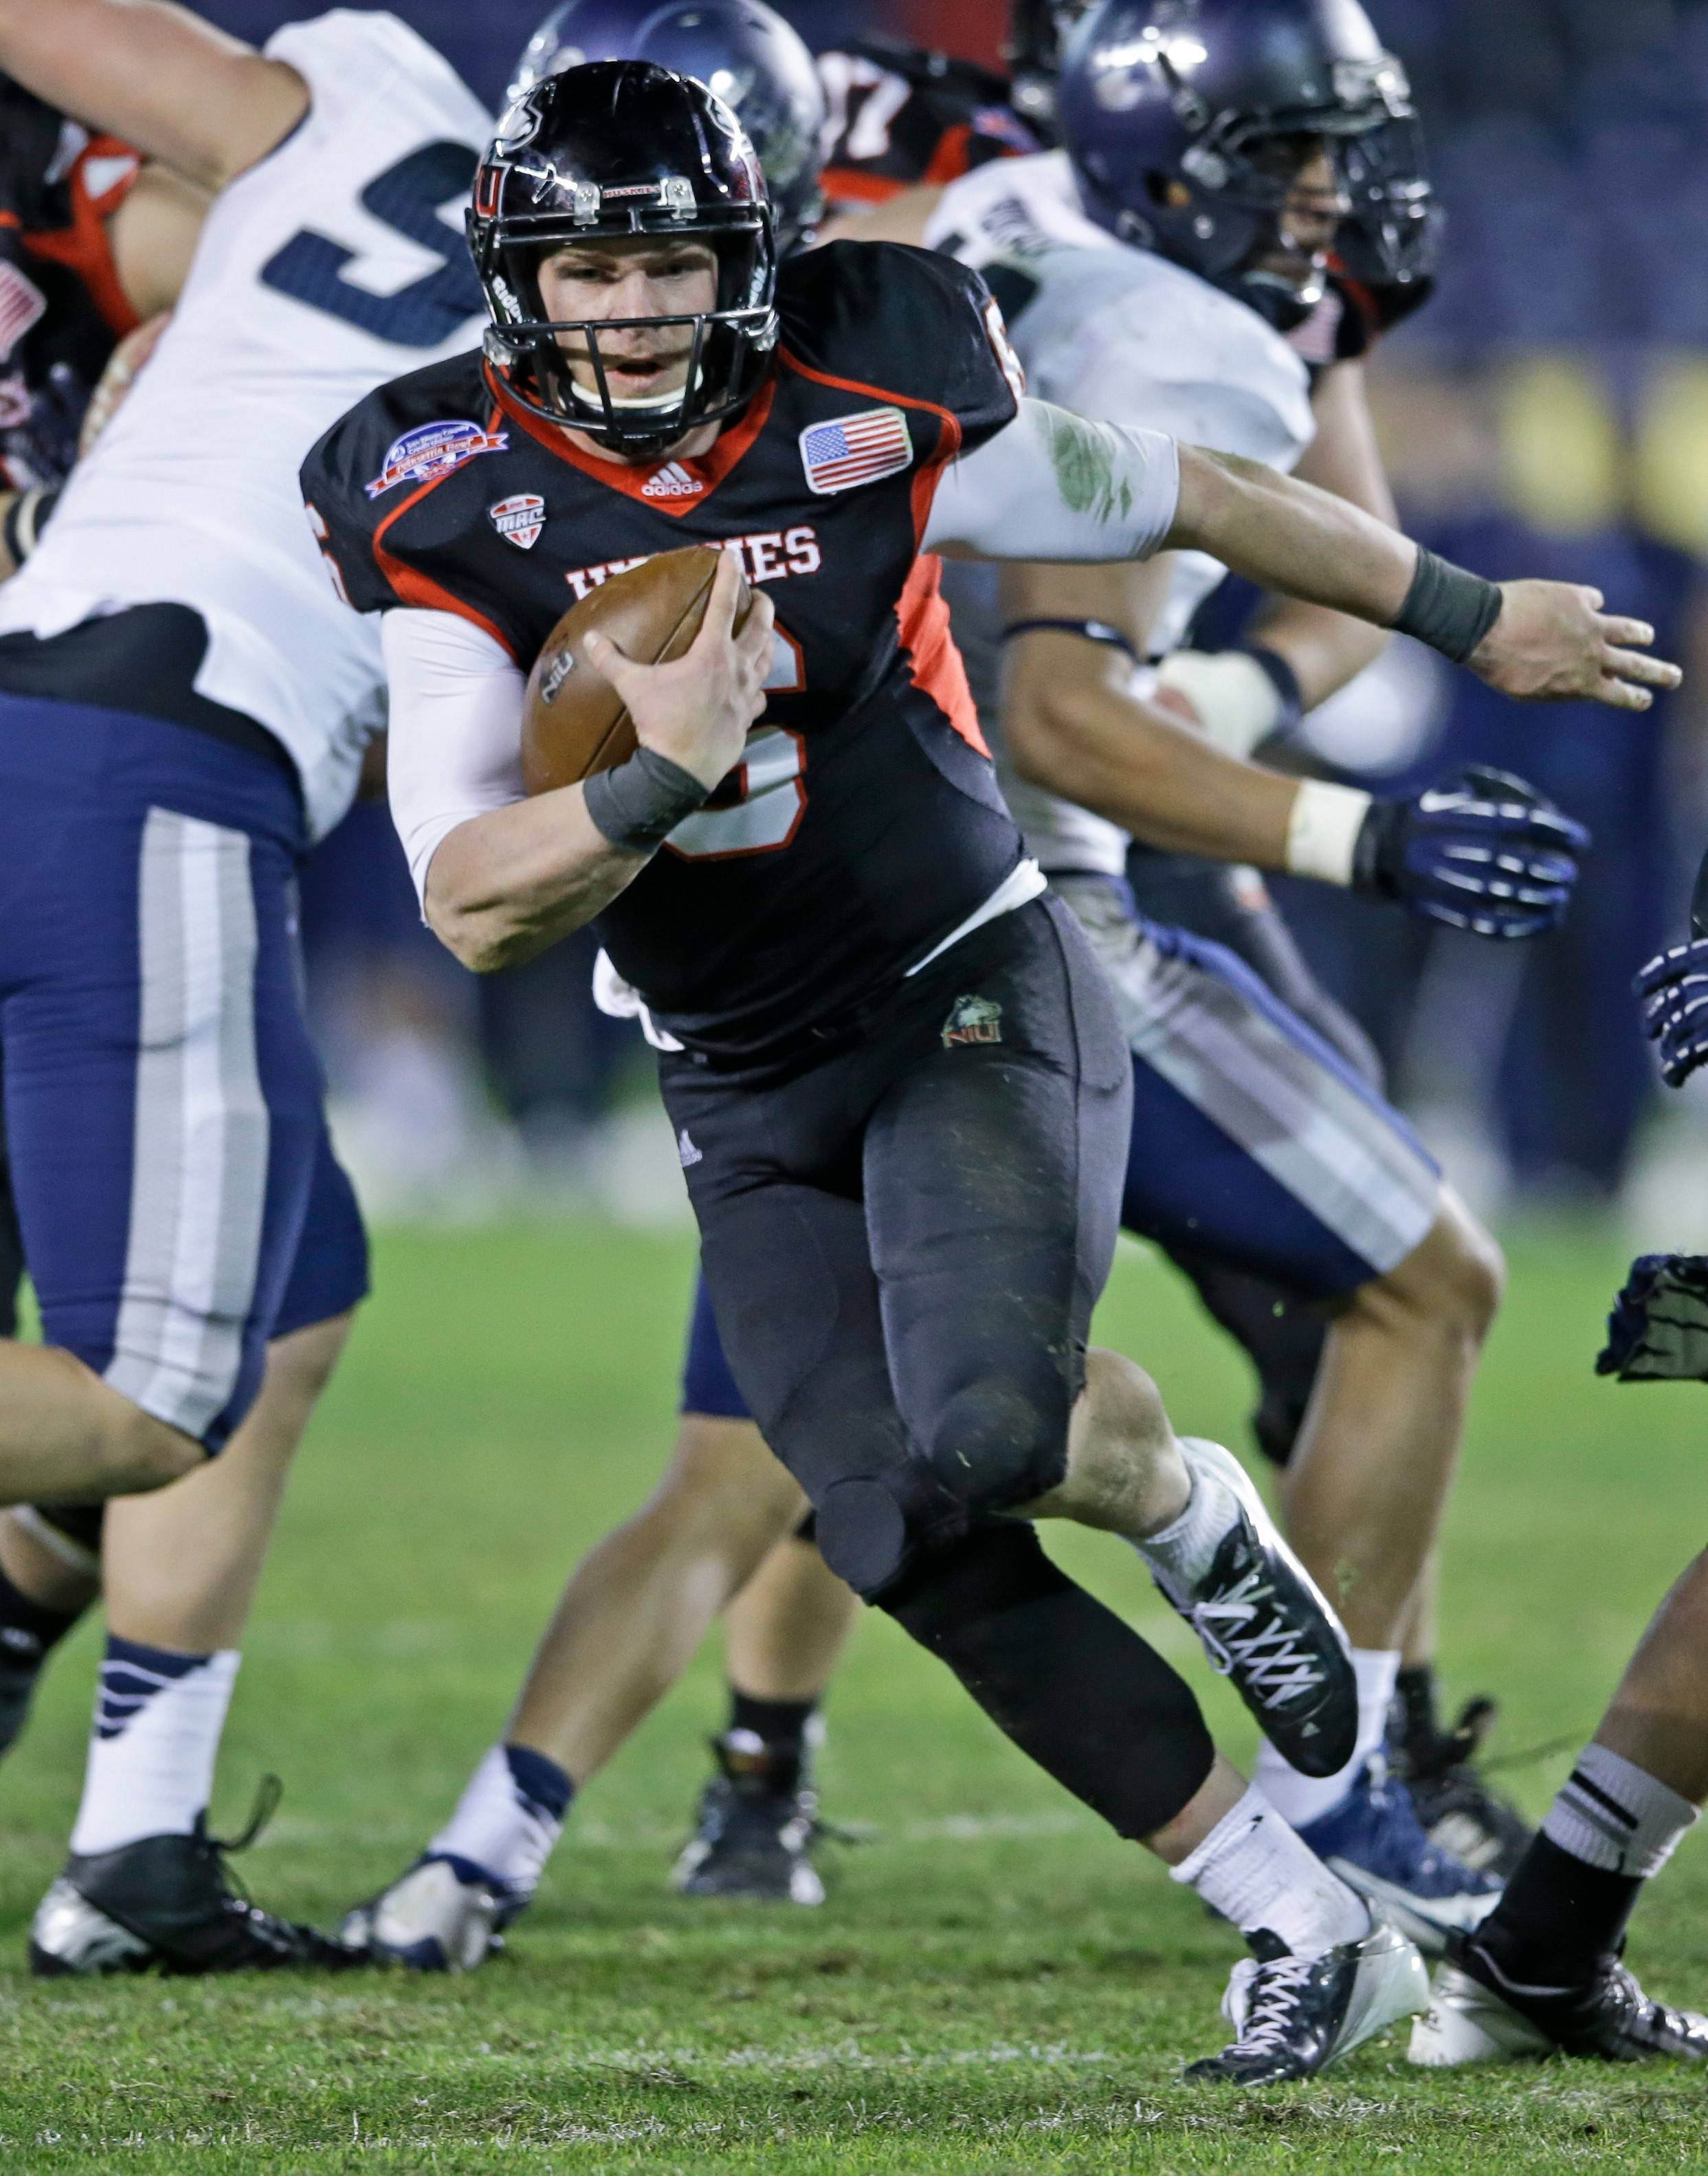 Northern Illinois quarterback Jordan Lynch finished third in the Heisman Trophy voting this past season.